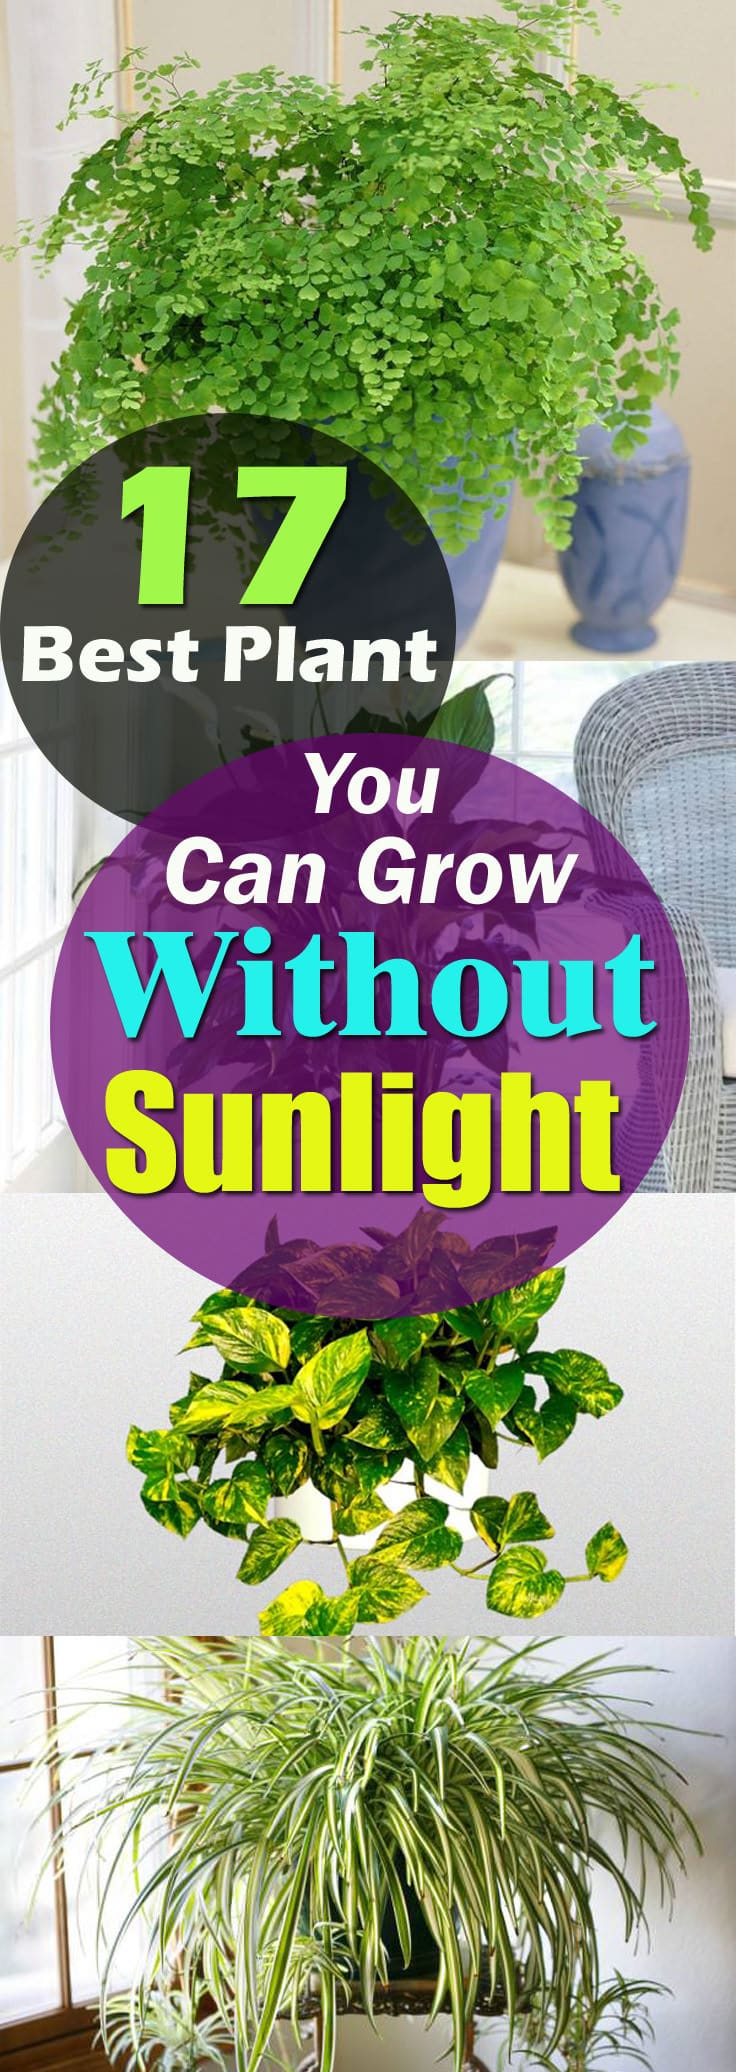 Plants That Grow Without Sunlight 17 Best Plants To Grow